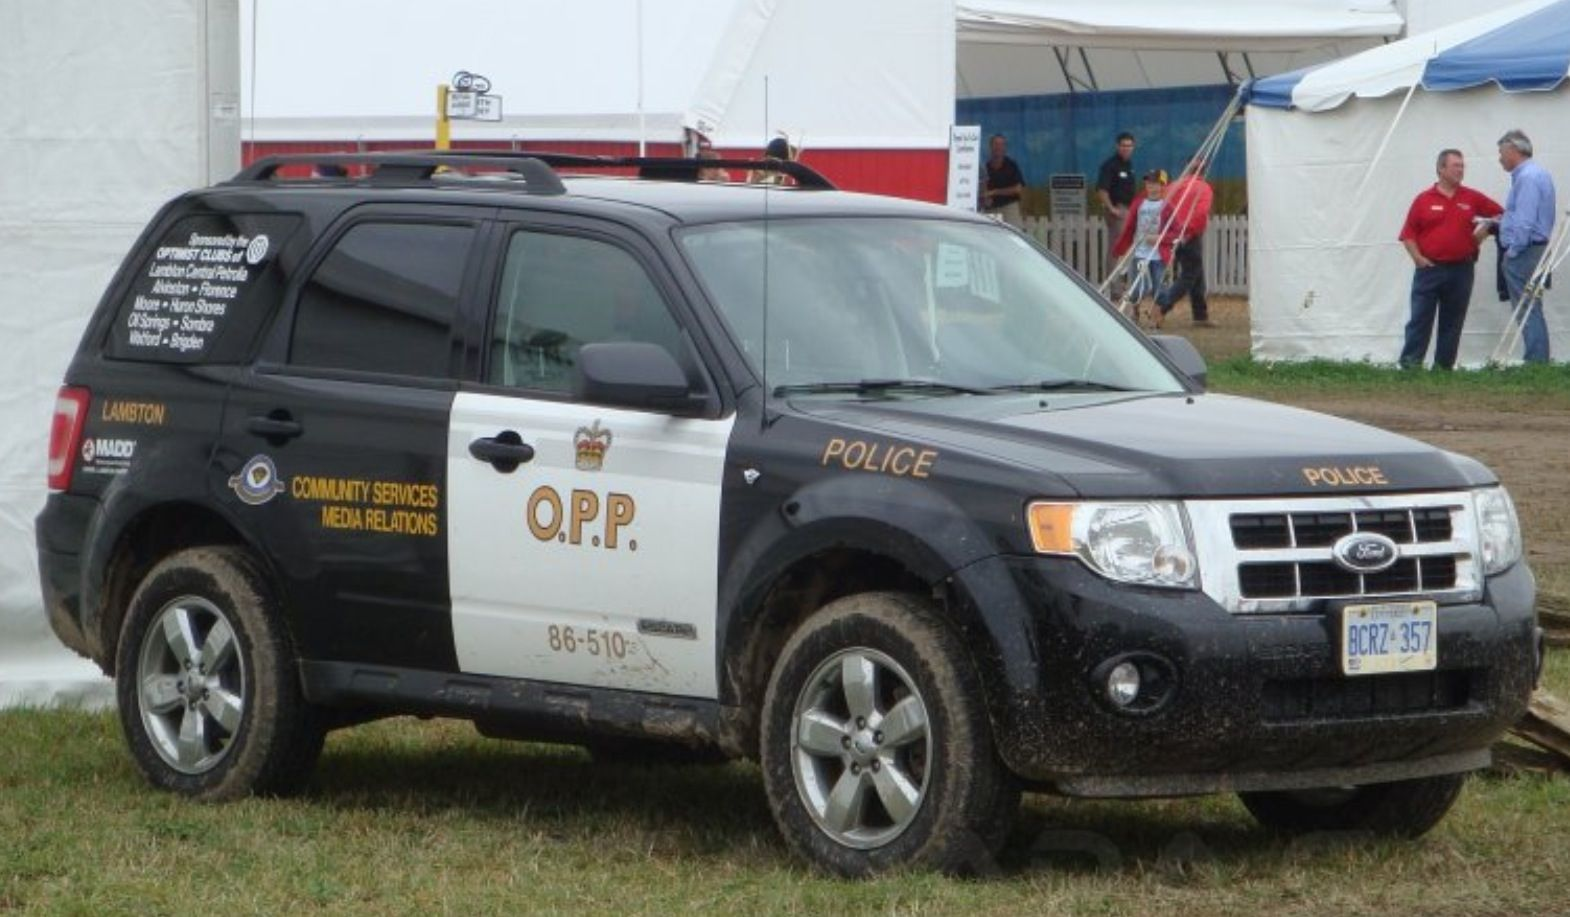 O P P Ford Escape Police Cars Emergency Vehicles Police